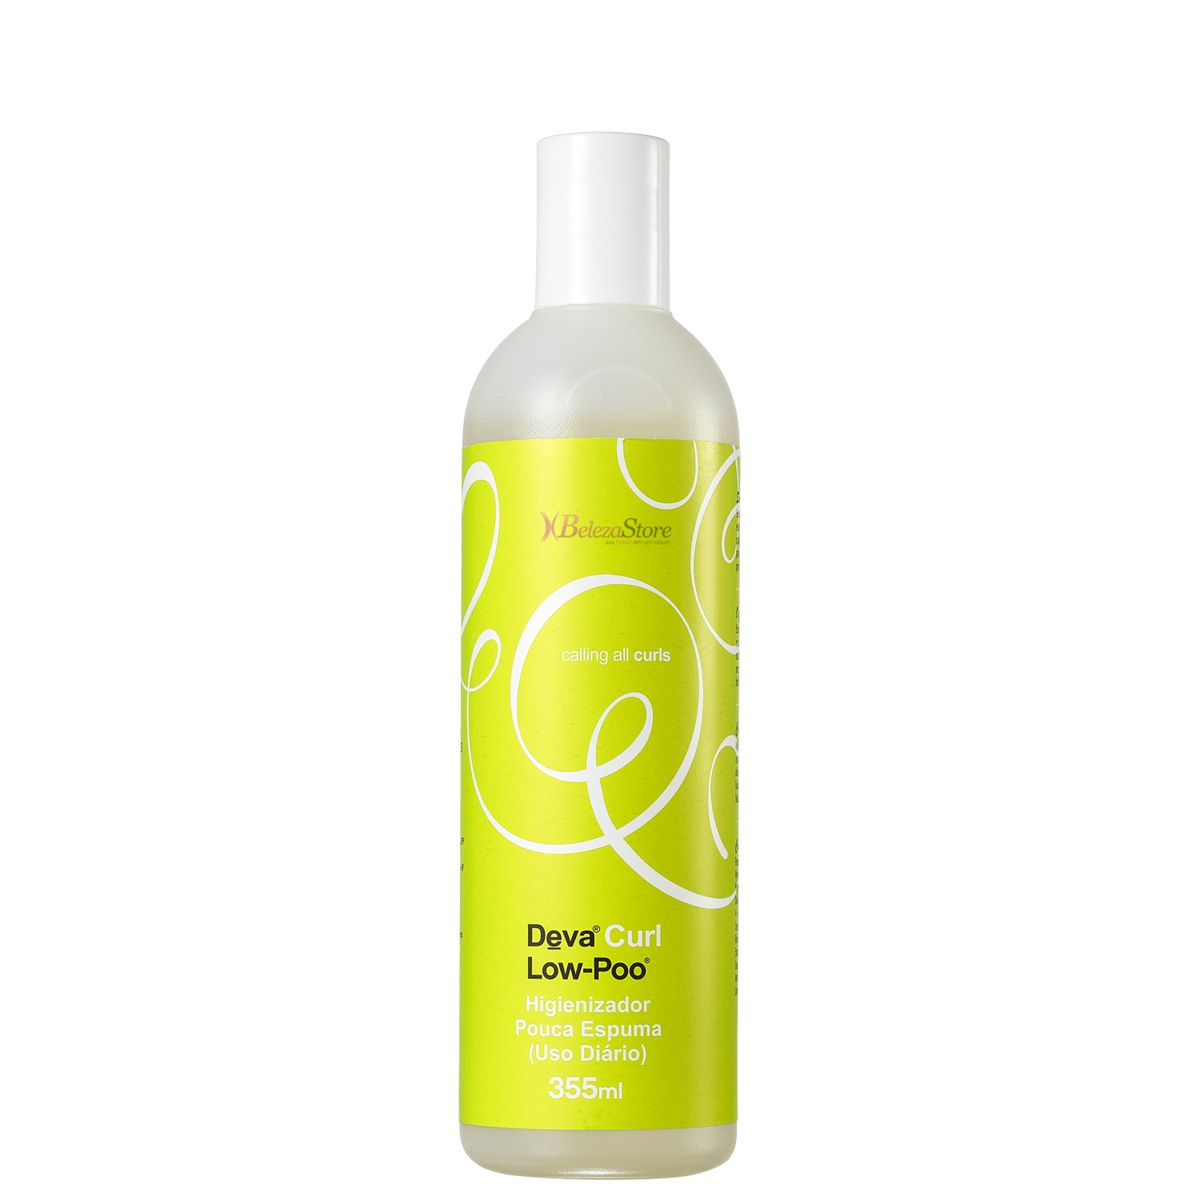 Deva Curl Low-Poo - 355ml